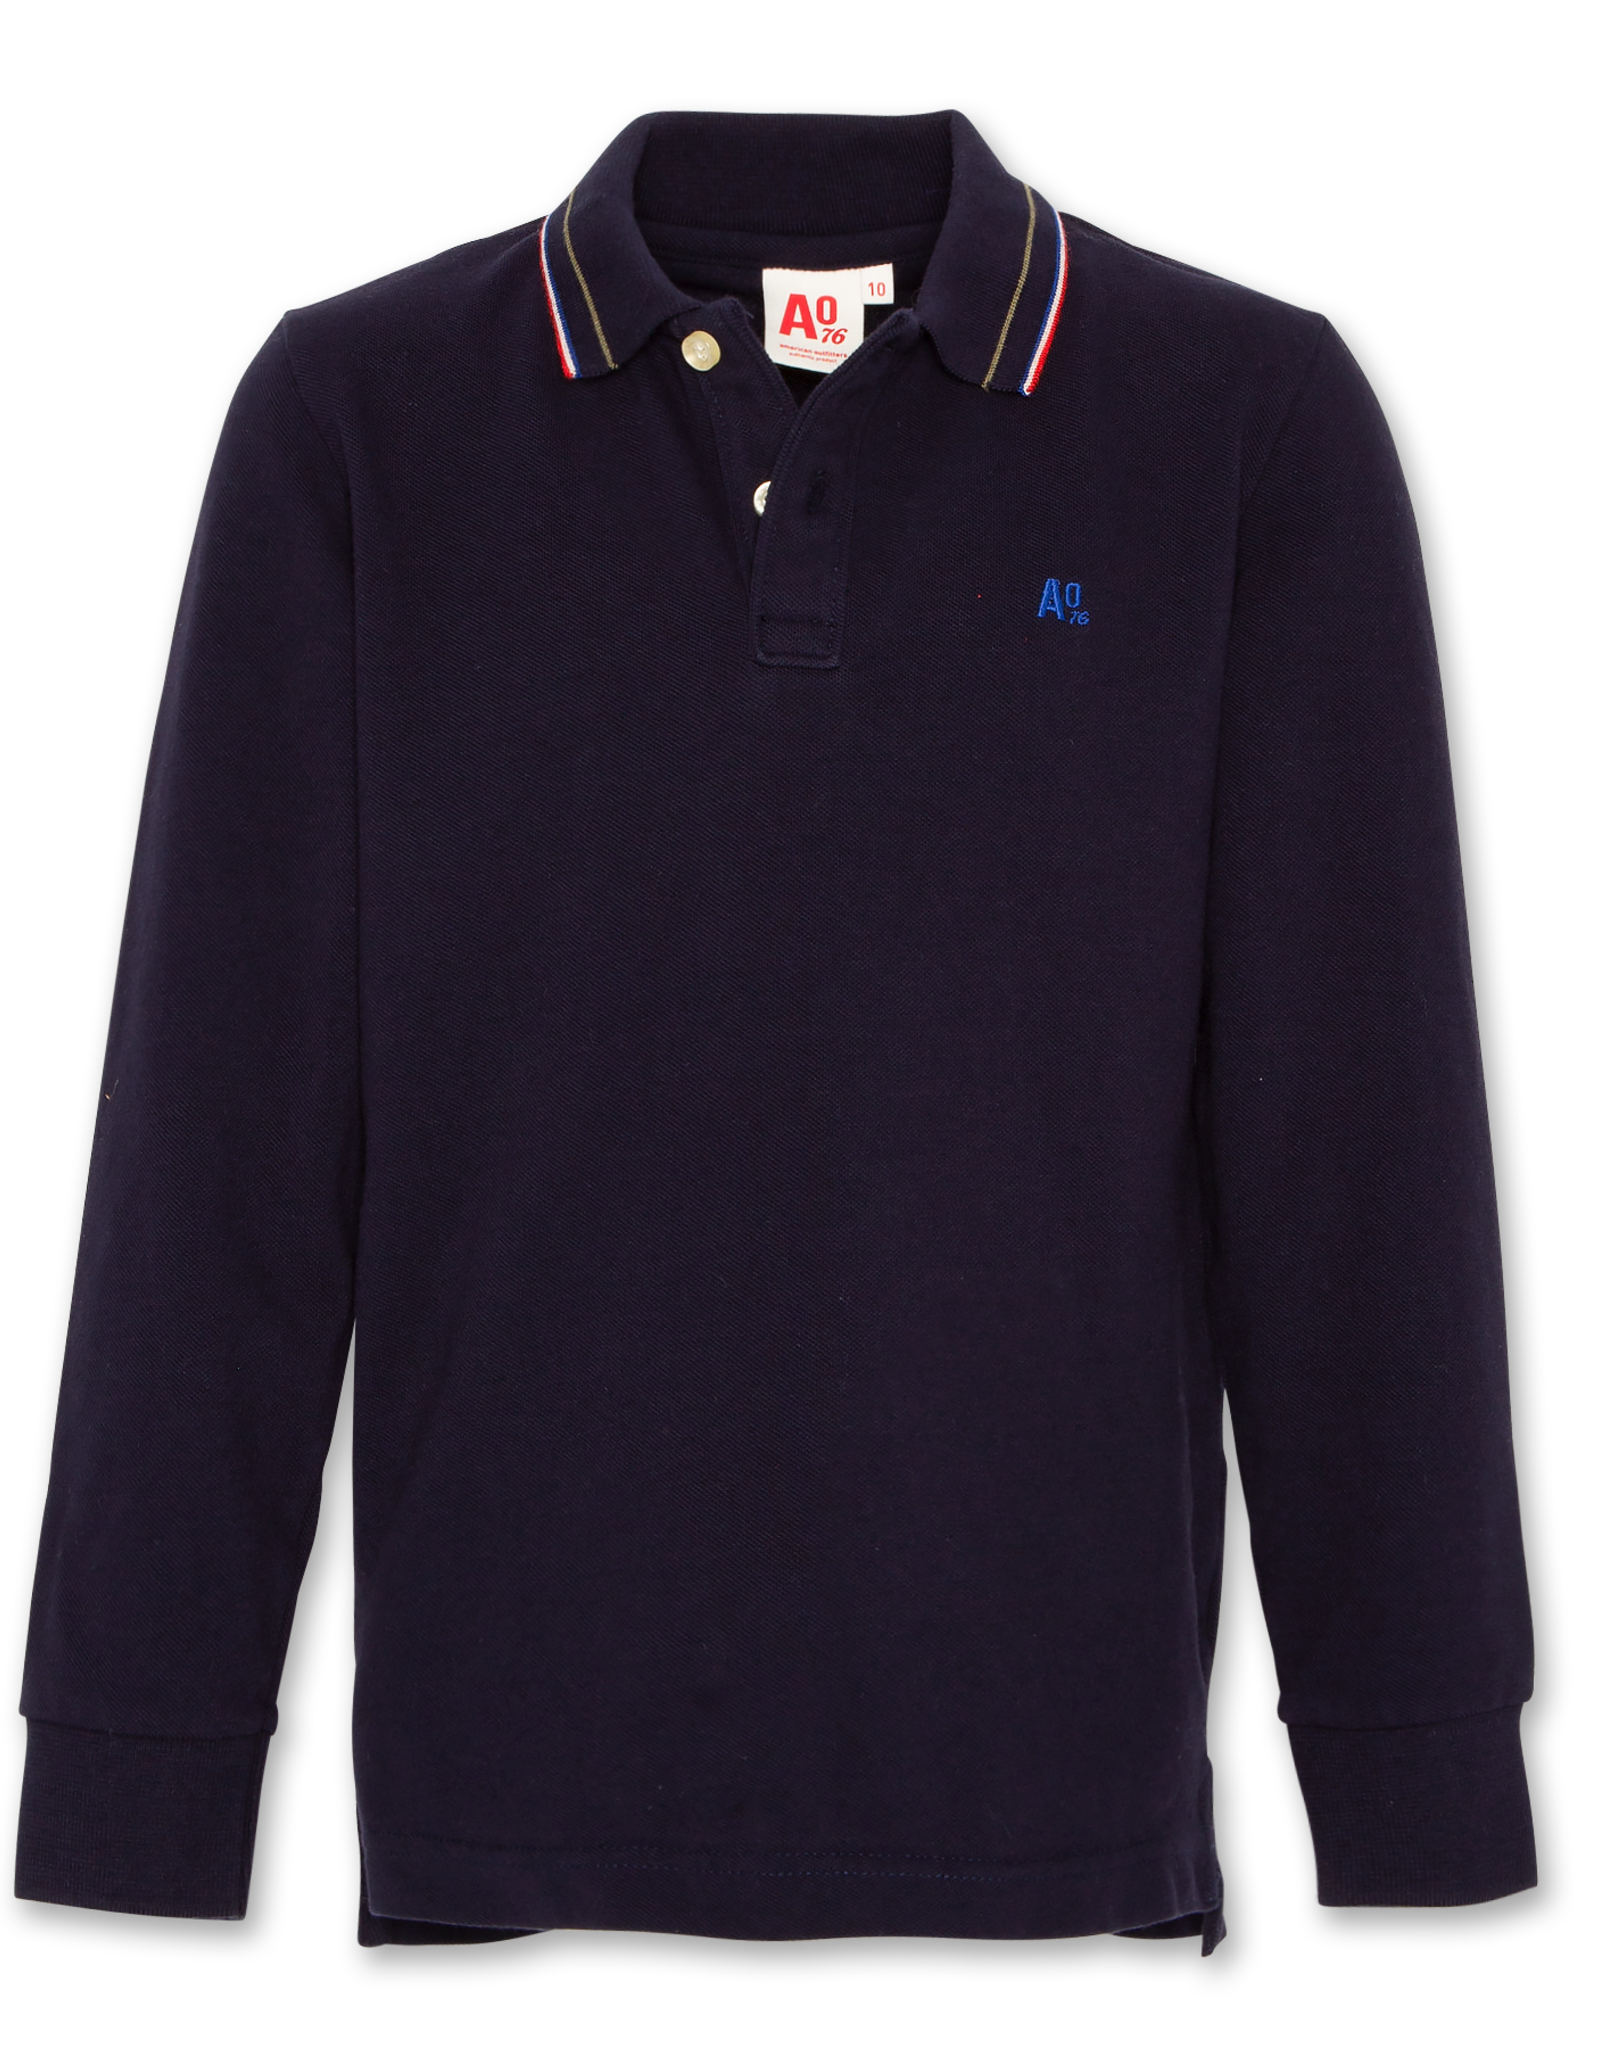 AMERICAN OUTFITTERS polo pique ls Dark navy